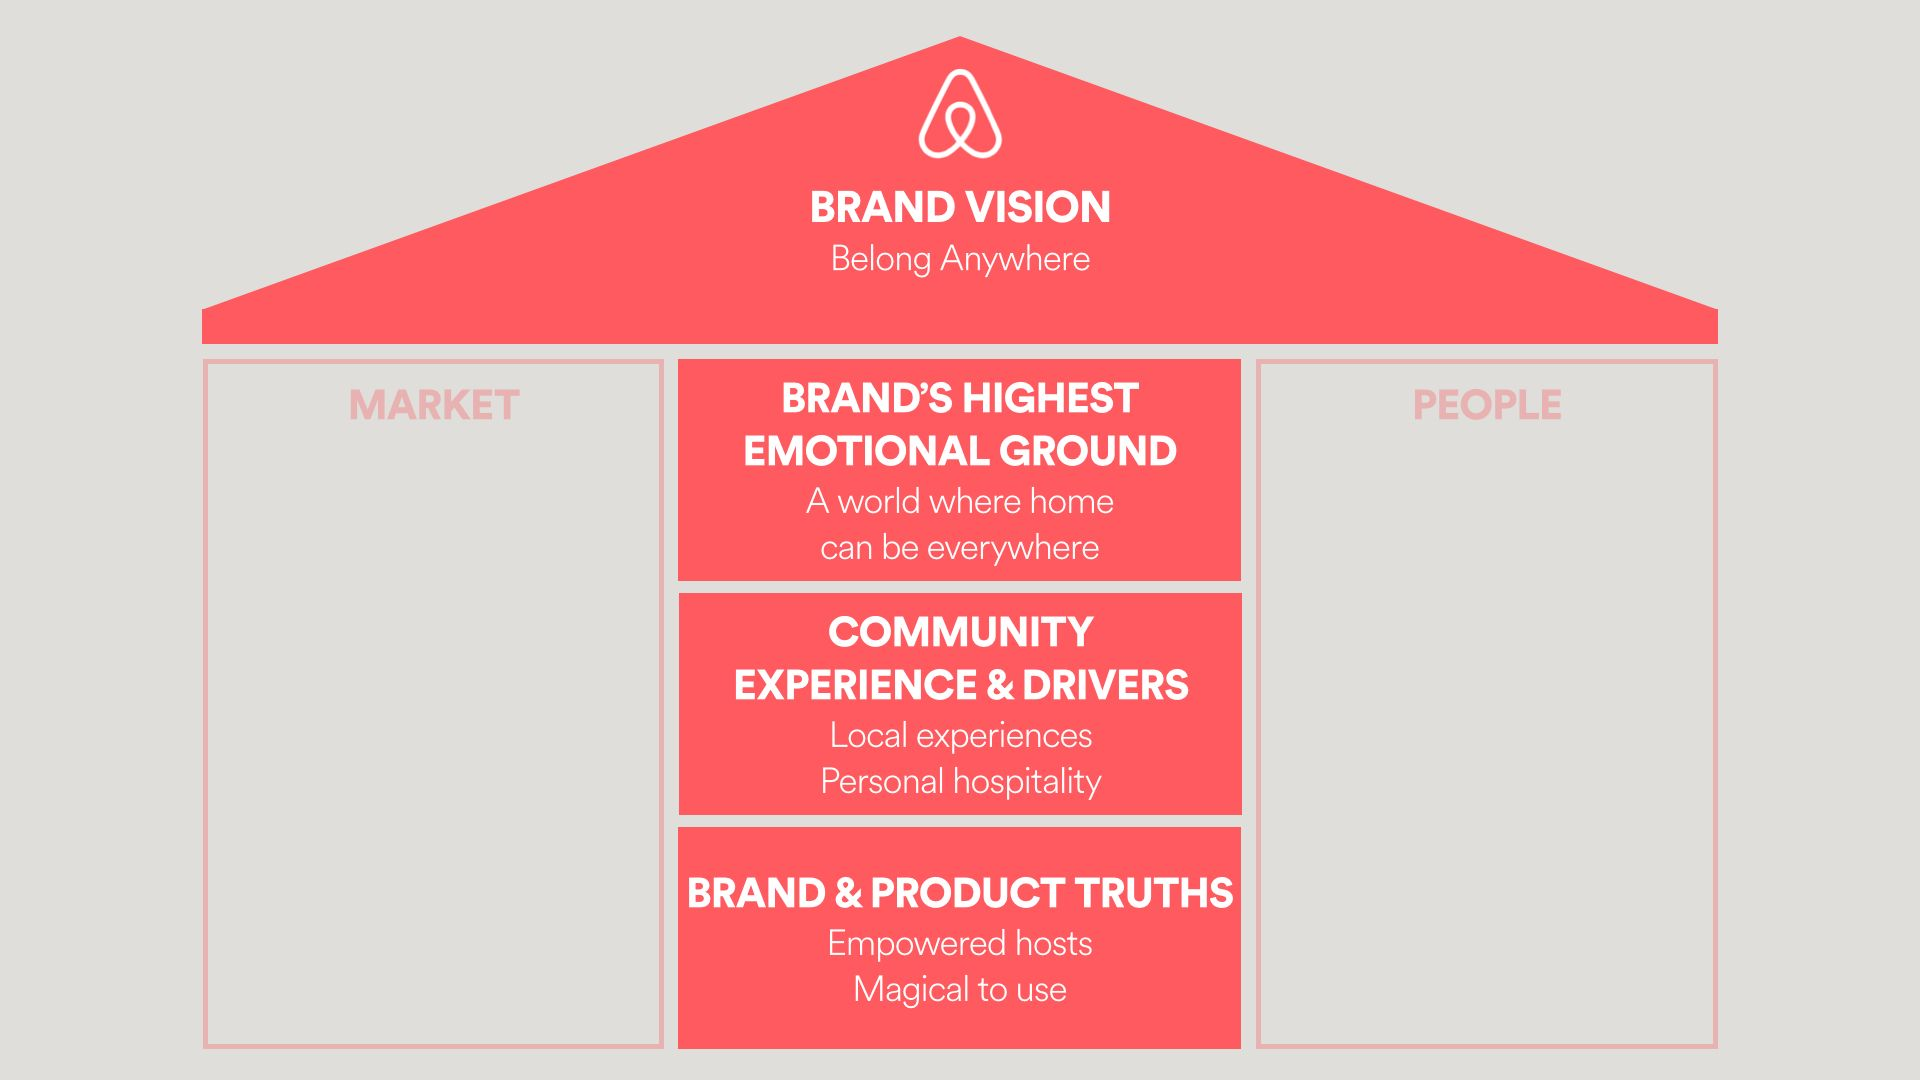 We have focused on the three components of the brand vision: the brand's values; the brand's envisioned future; and the brand's purpose. The reason for having a brand vision is that it gives a clear statement about the 'soul' of the brand and provides a good sense of direction.